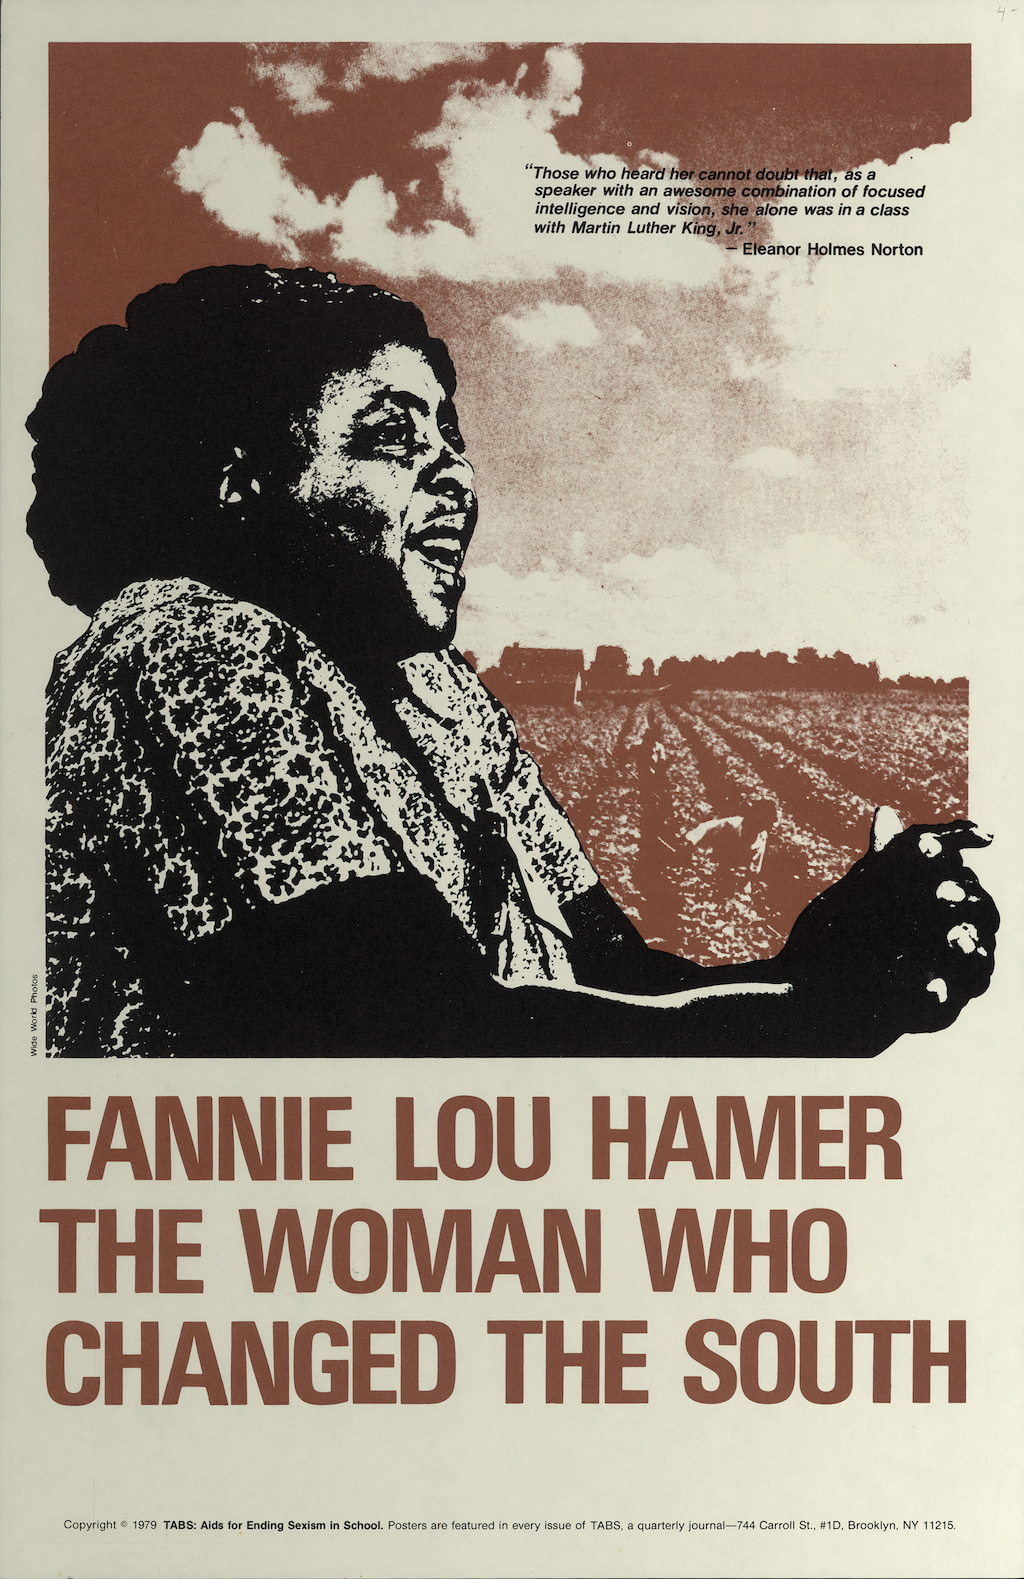 Fannie Lou Hamer - The Woman Who Changed the South